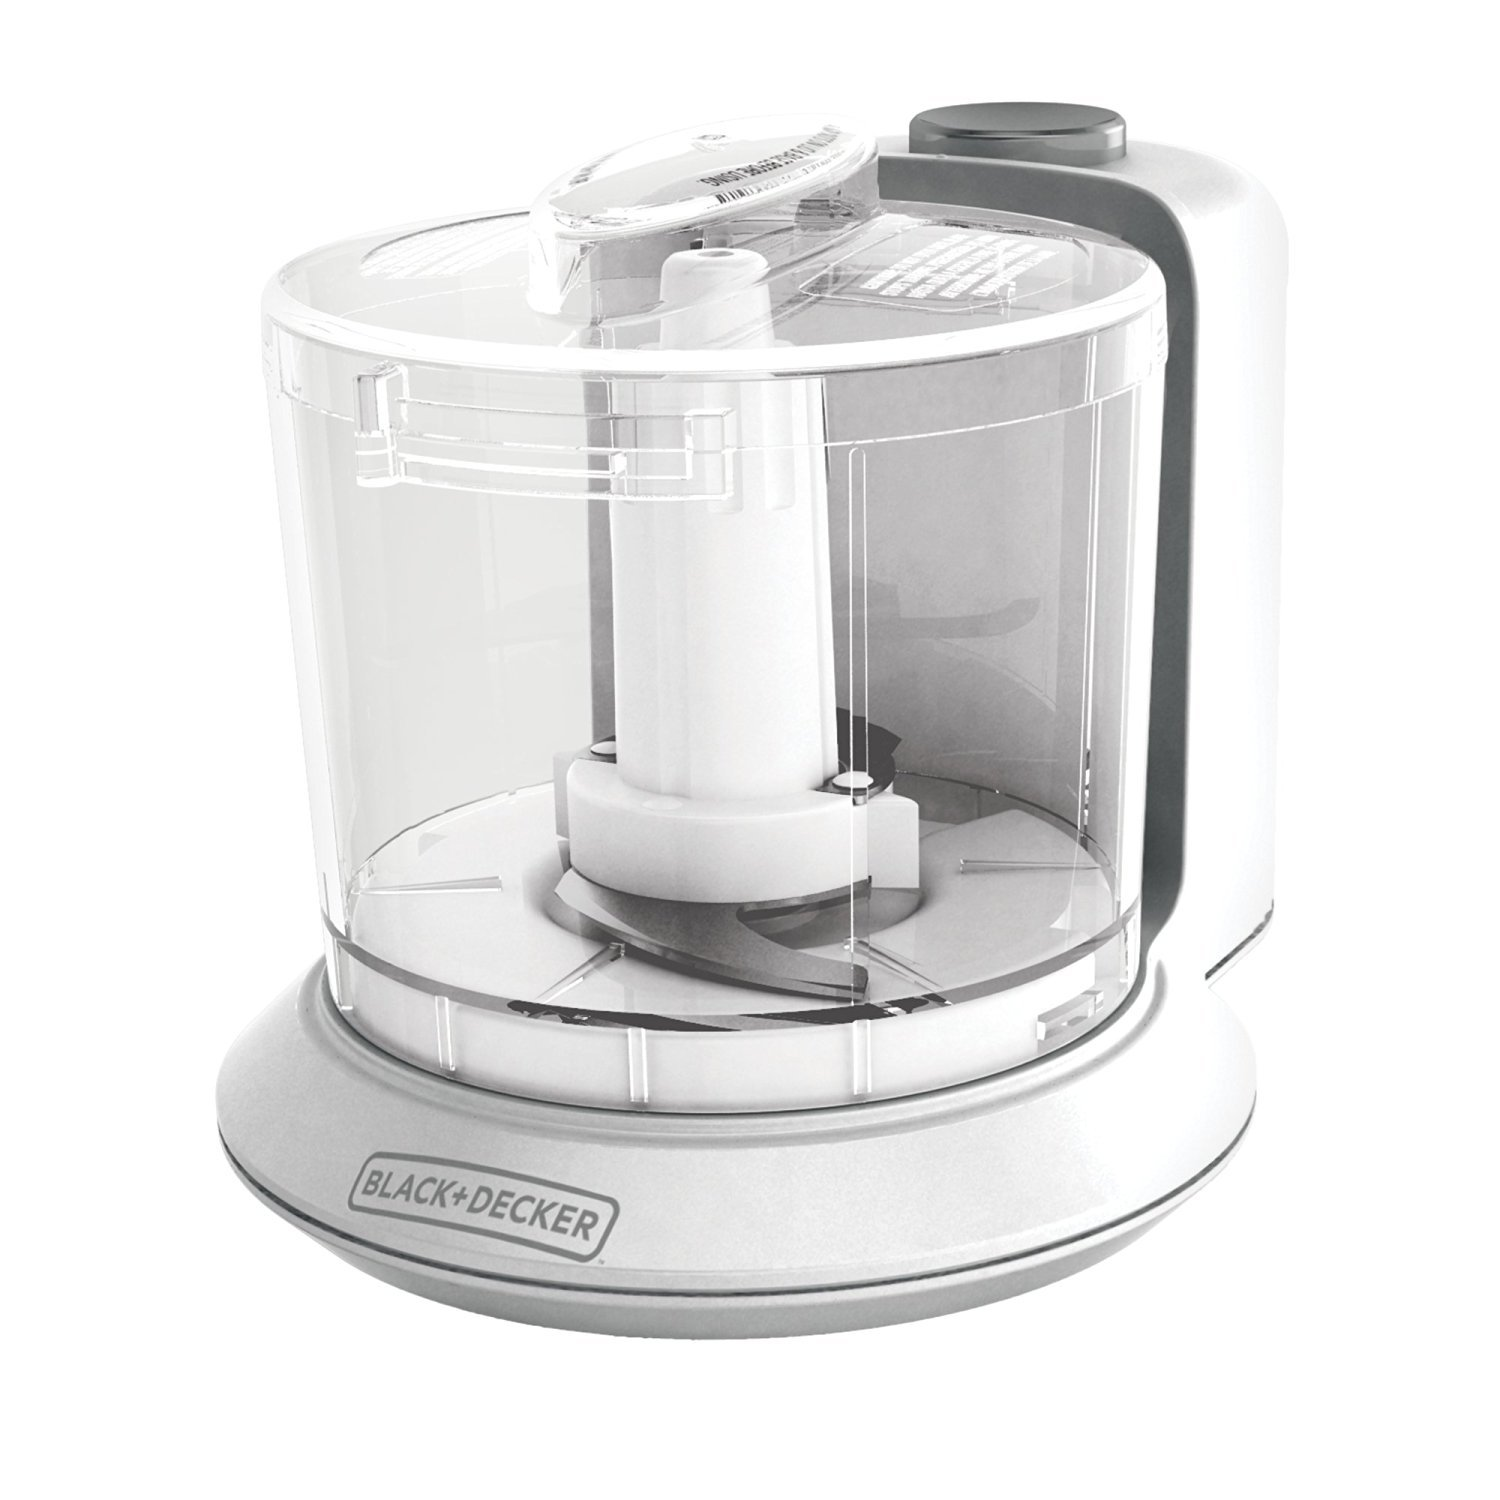 Black & Decker HC306 1-1/2-Cup One-Touch Electric Chopper, White, 2-Pack